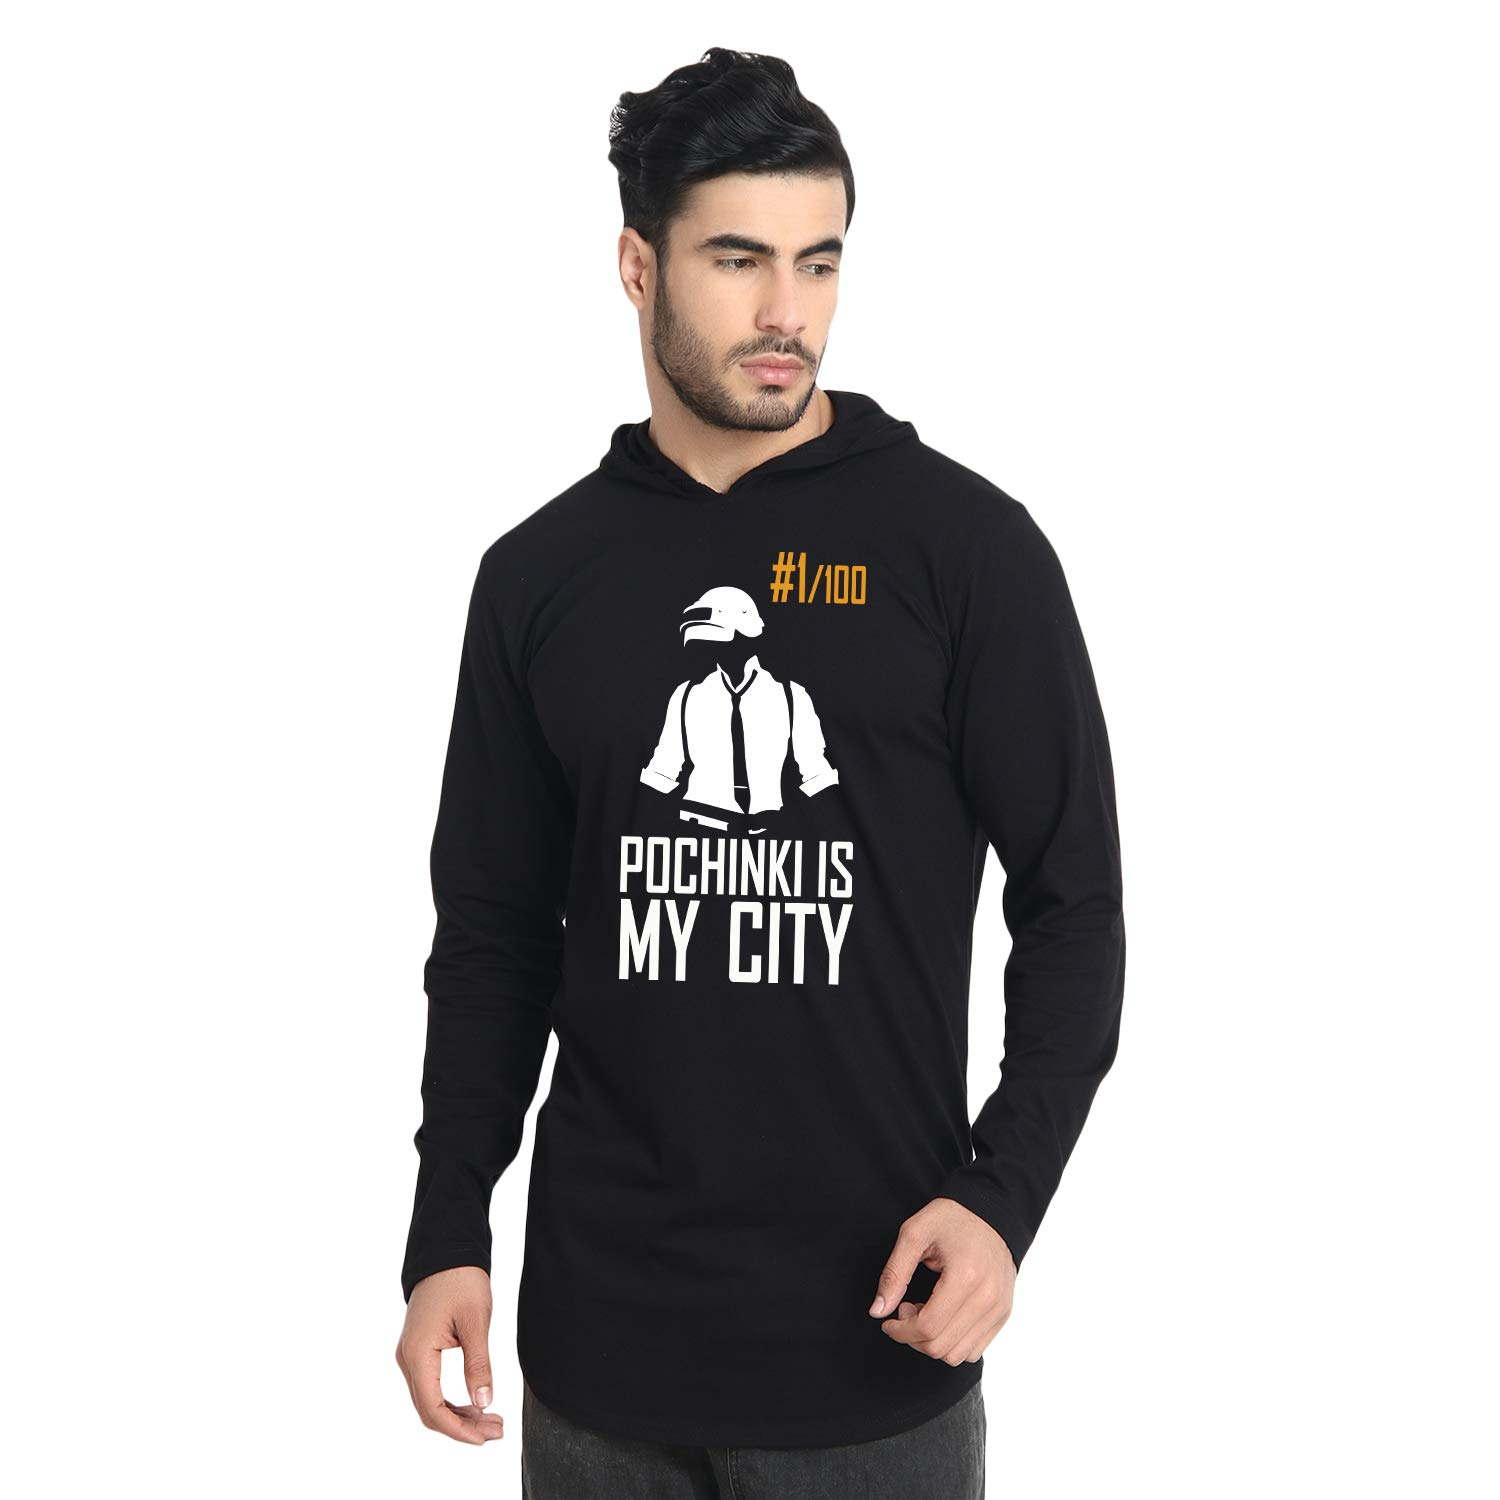 men's apple cut hooded black tshirt for pubg lovers, tshirt for pubg lovers,hoodie for pubg lovers,pubg lovers, pochinki lovers pubg tshirt,